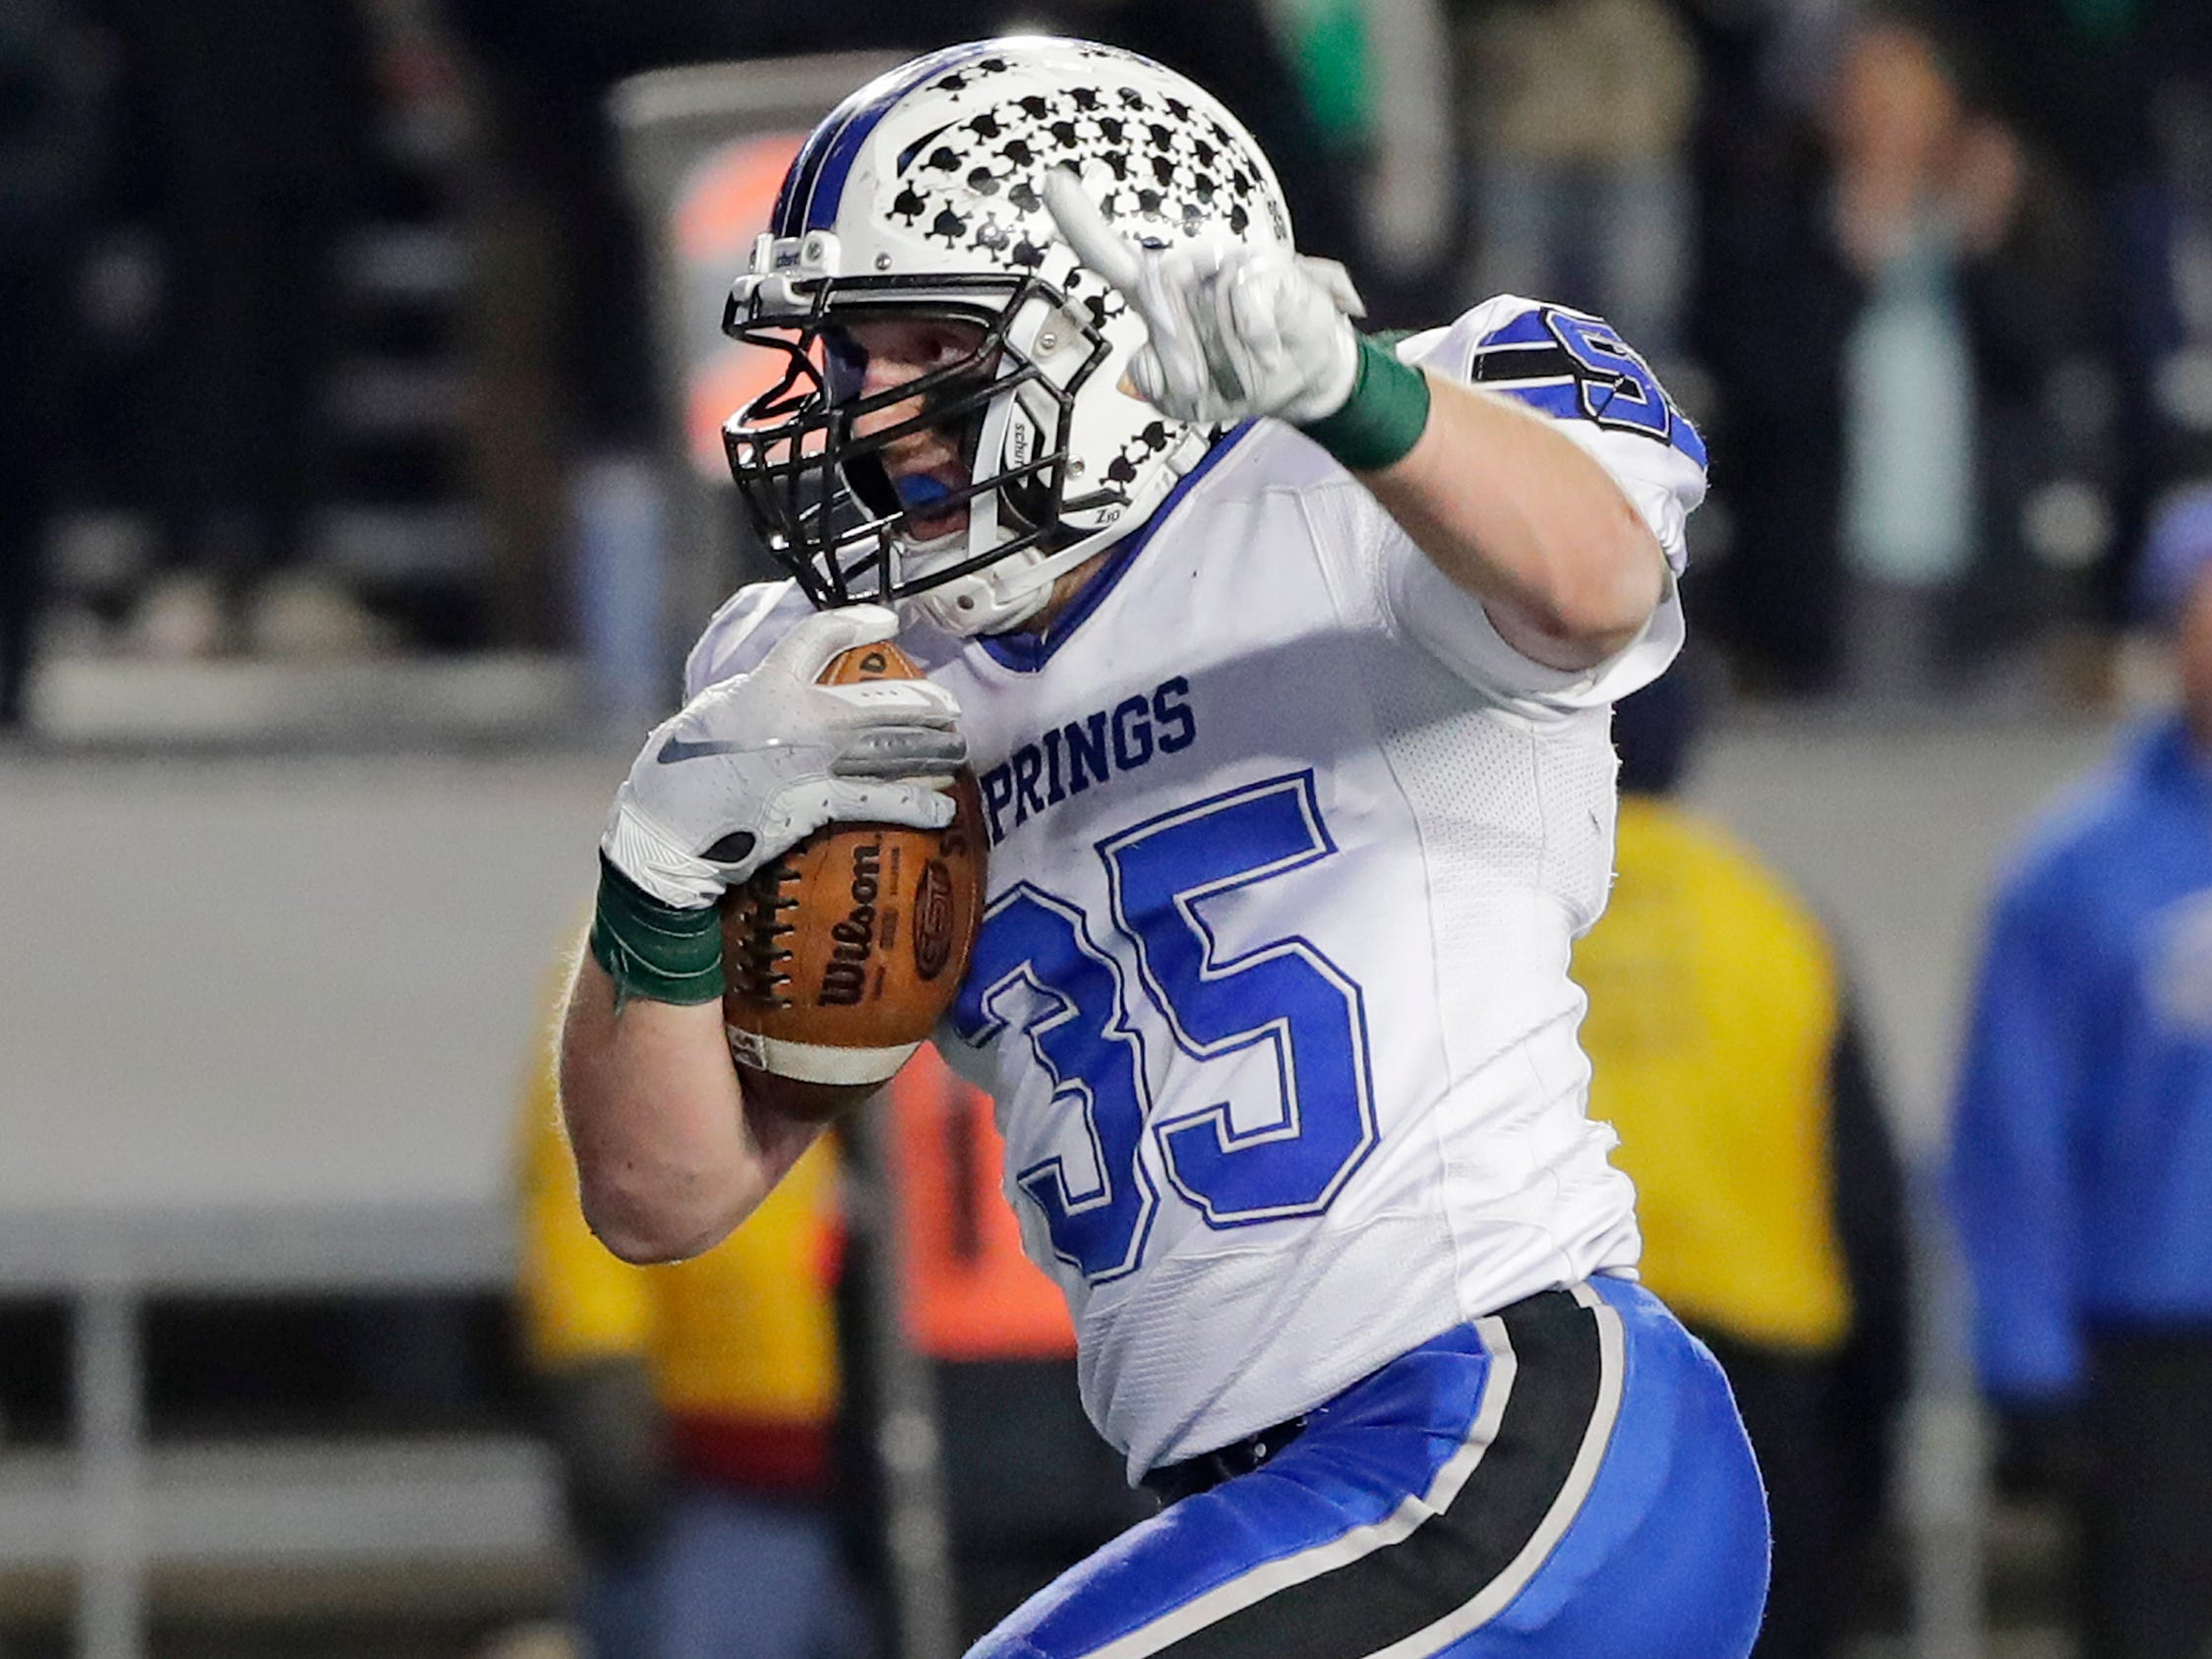 St Mary's Springs Academy's Marcus Orlandoni (35) rushes for a touchdown against Stratford in the WIAA Division 5 championship game at Camp Randall Stadium on Thursday, November 15, 2018 in Madison, Wis.